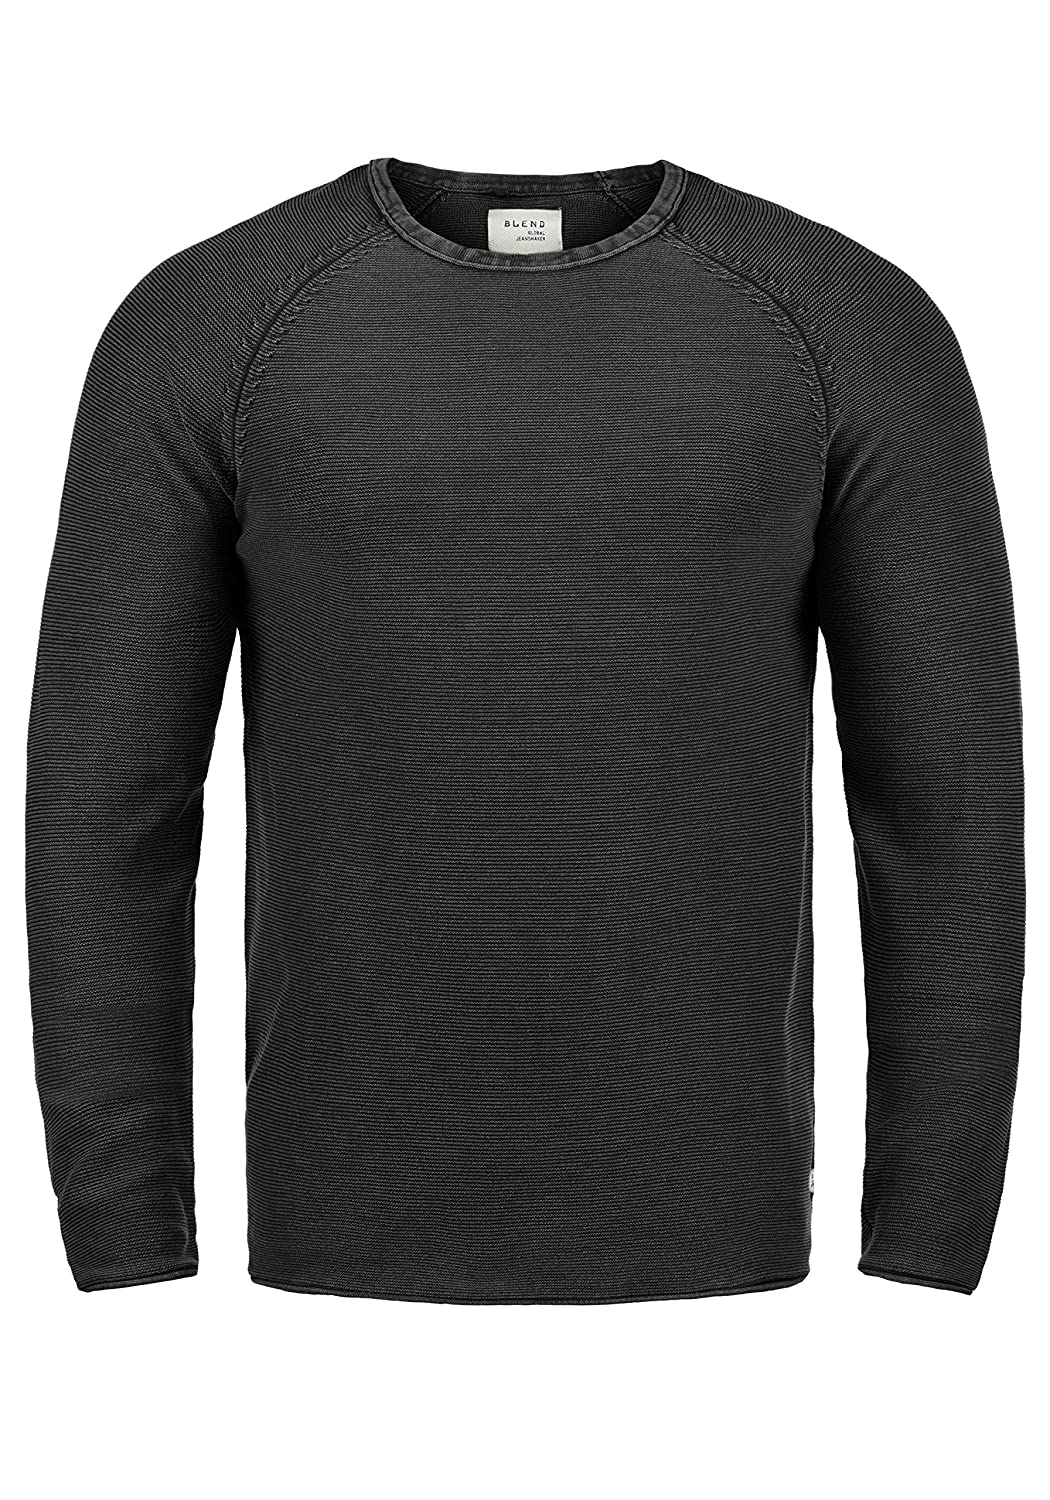 Blend Oddone Men's Jumper Knit Pullover Crew Neck Made 100% Cotton